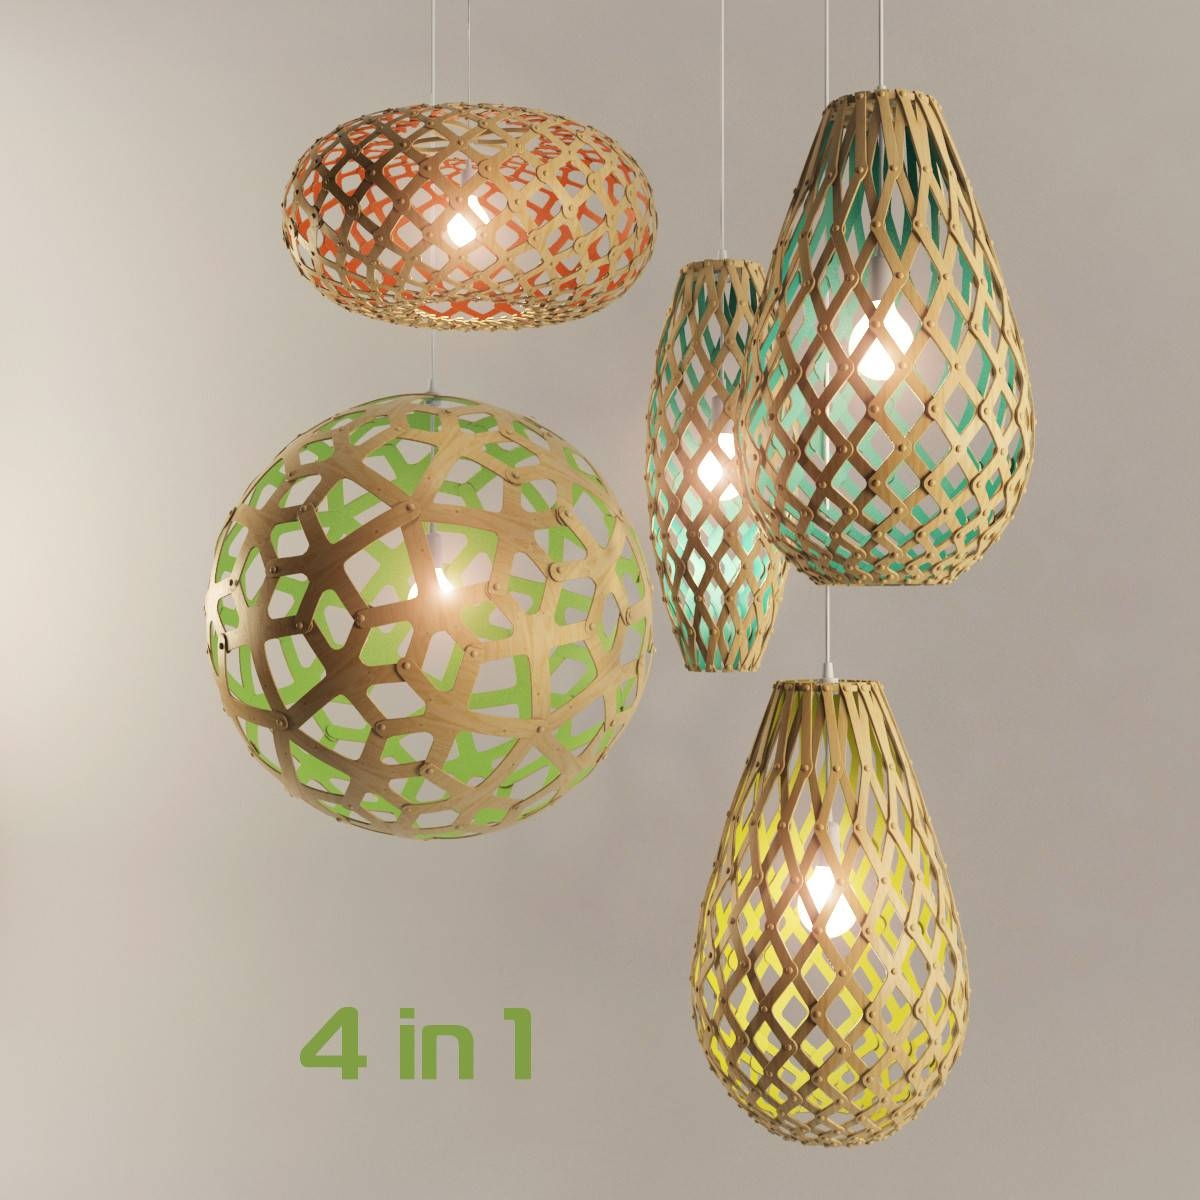 Lamp Vibia Stage 3D 3Ds In Coral Pendant Lights (View 9 of 15)